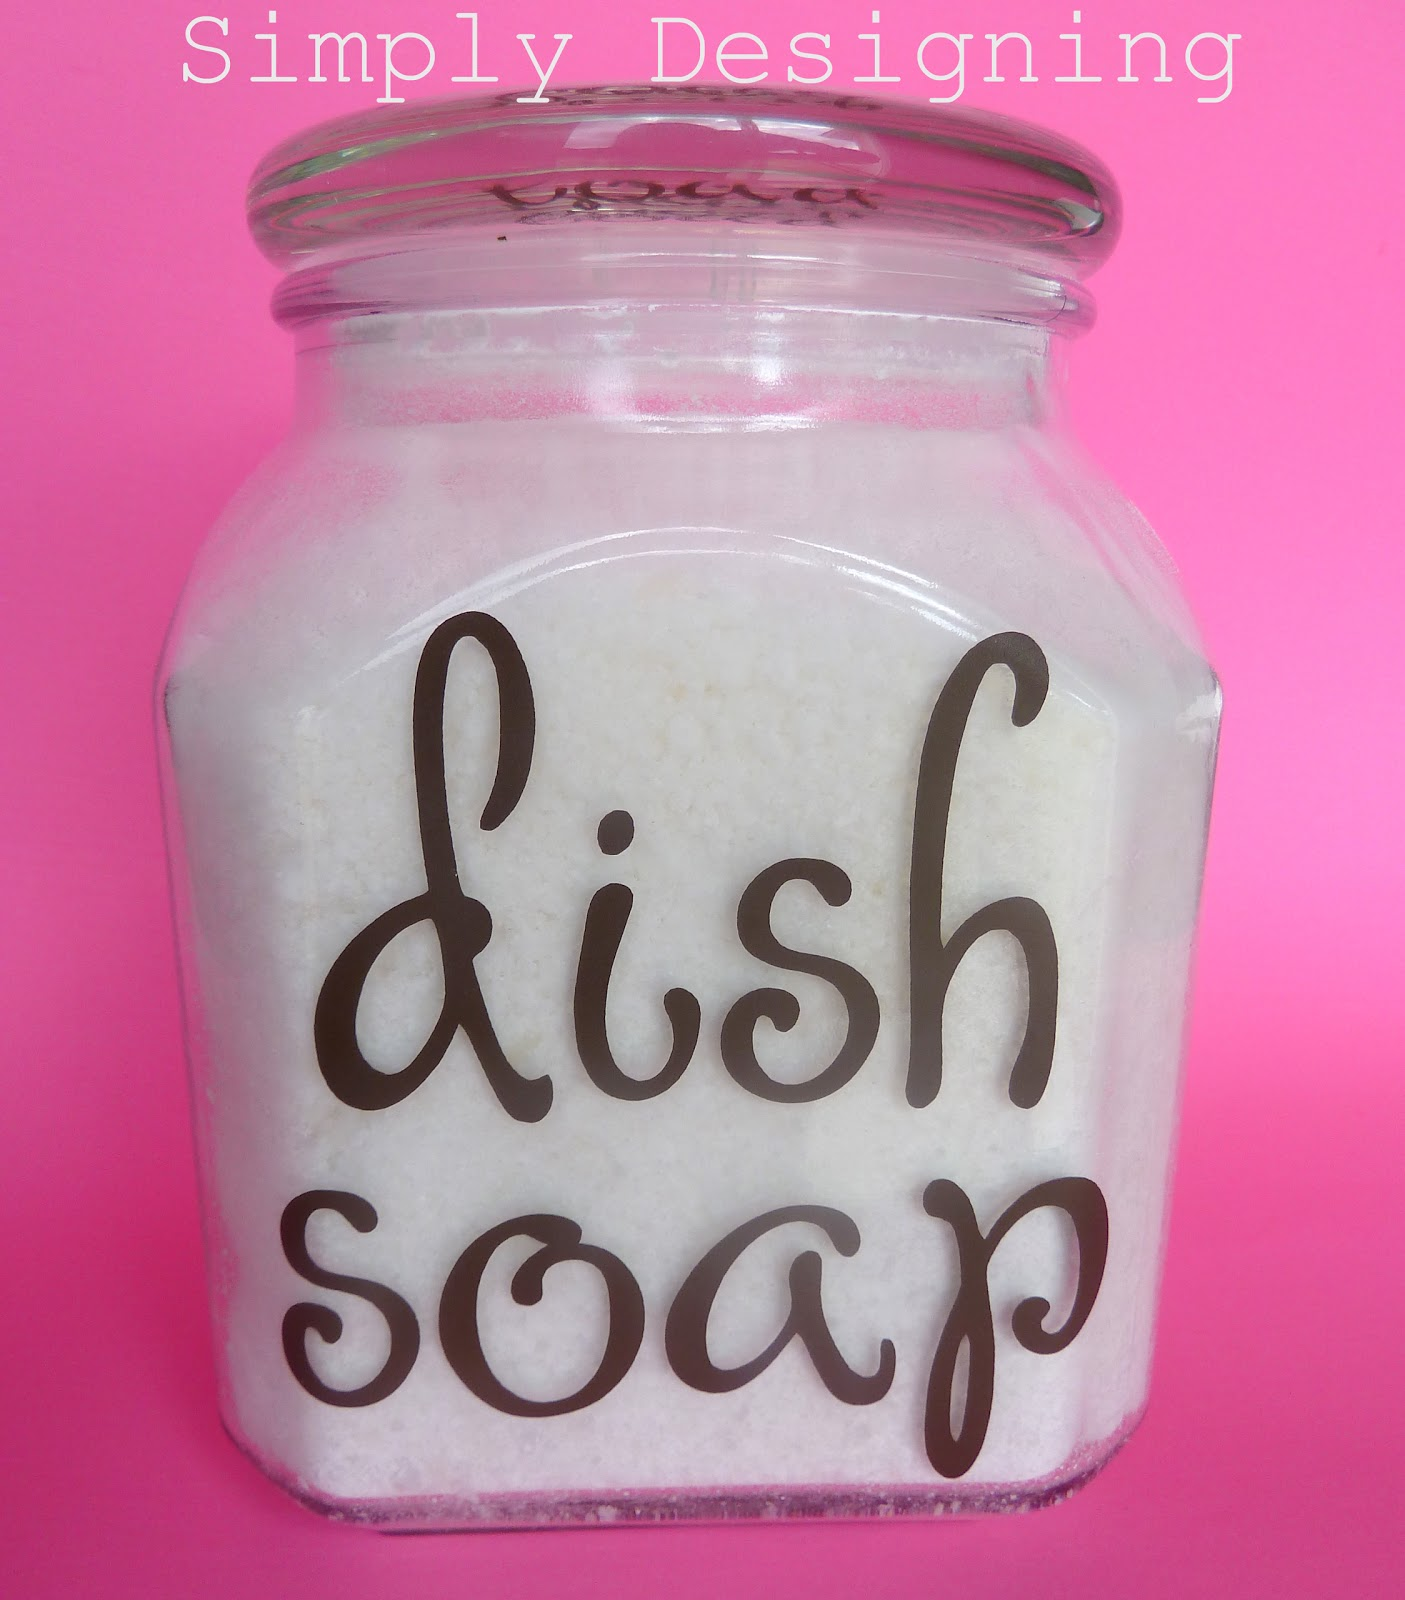 Homemade Dishwasher Detergent for Hard Water Stains That Works!